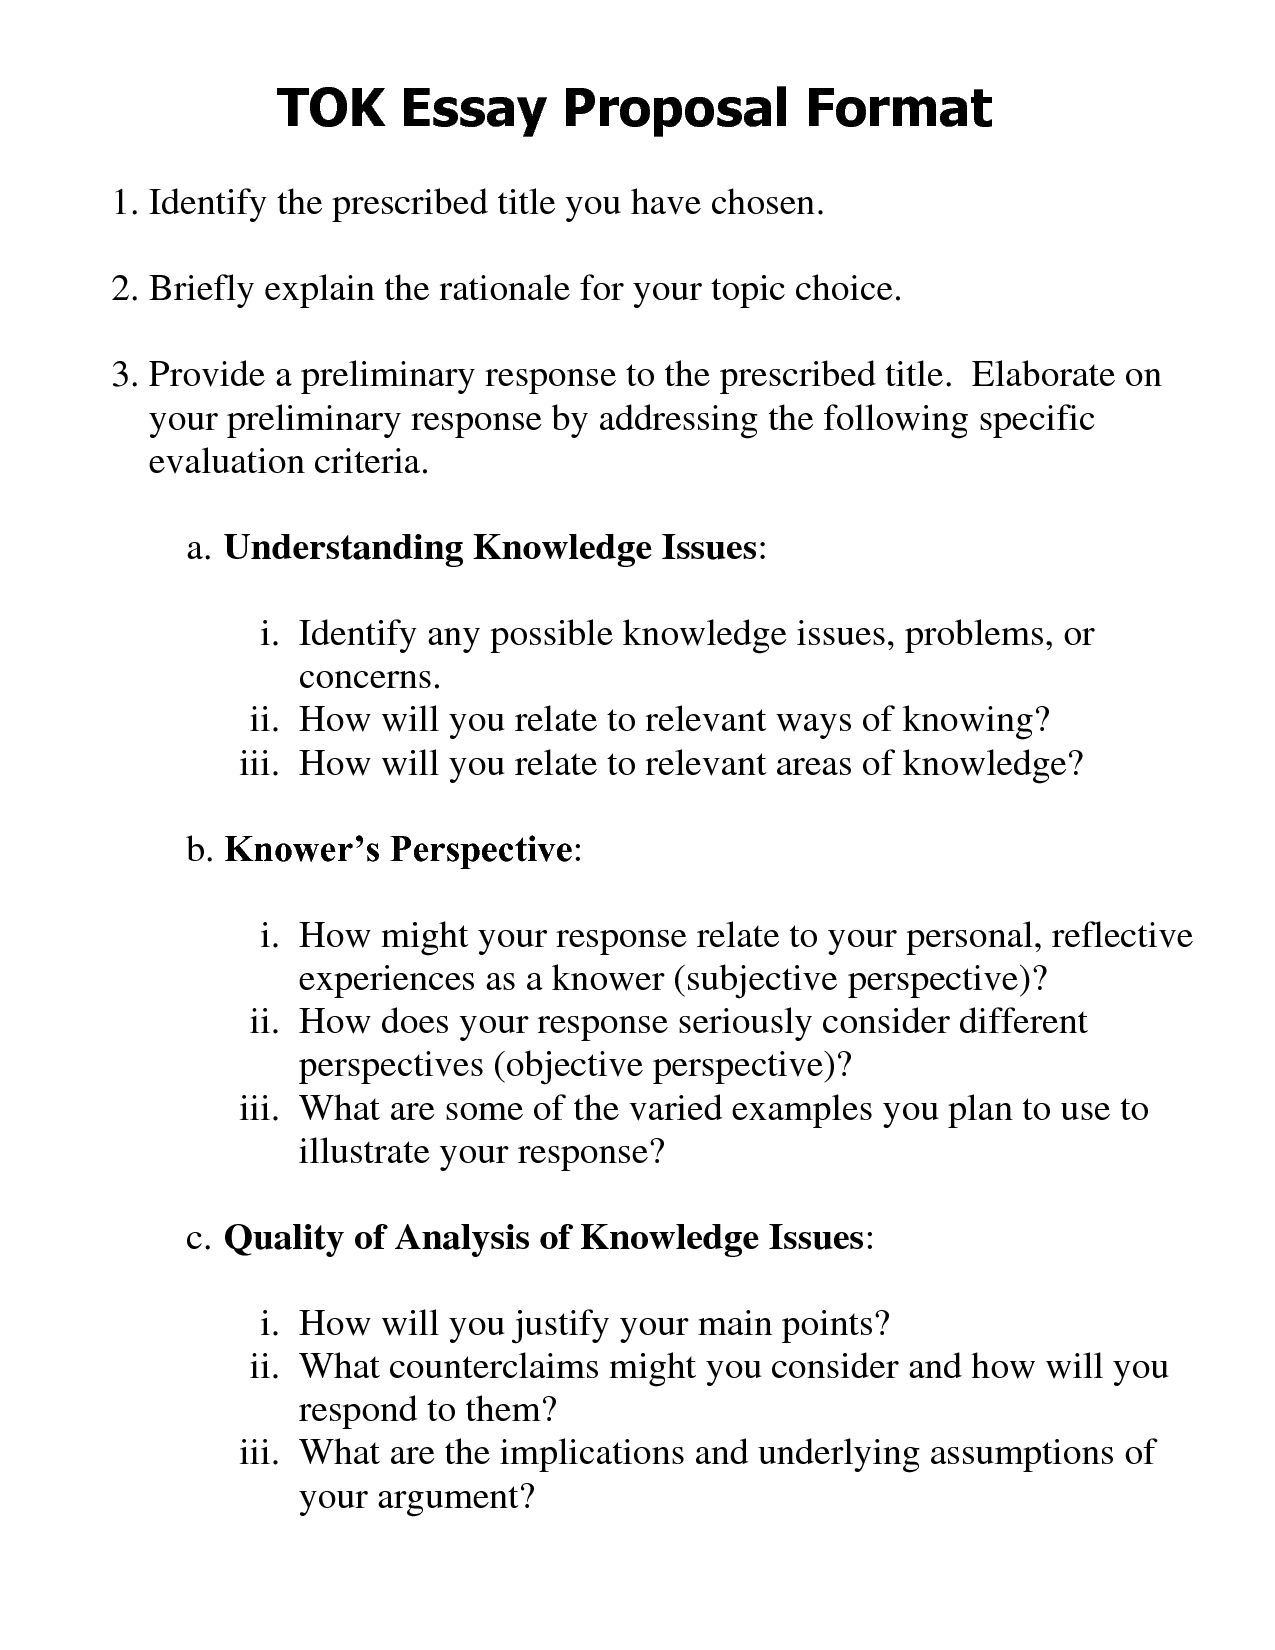 Essay For High School Students  High School Application Essay Examples also Written Essay Papers How To Write An Essay Proposal Best School Dissertation  Essays On High School